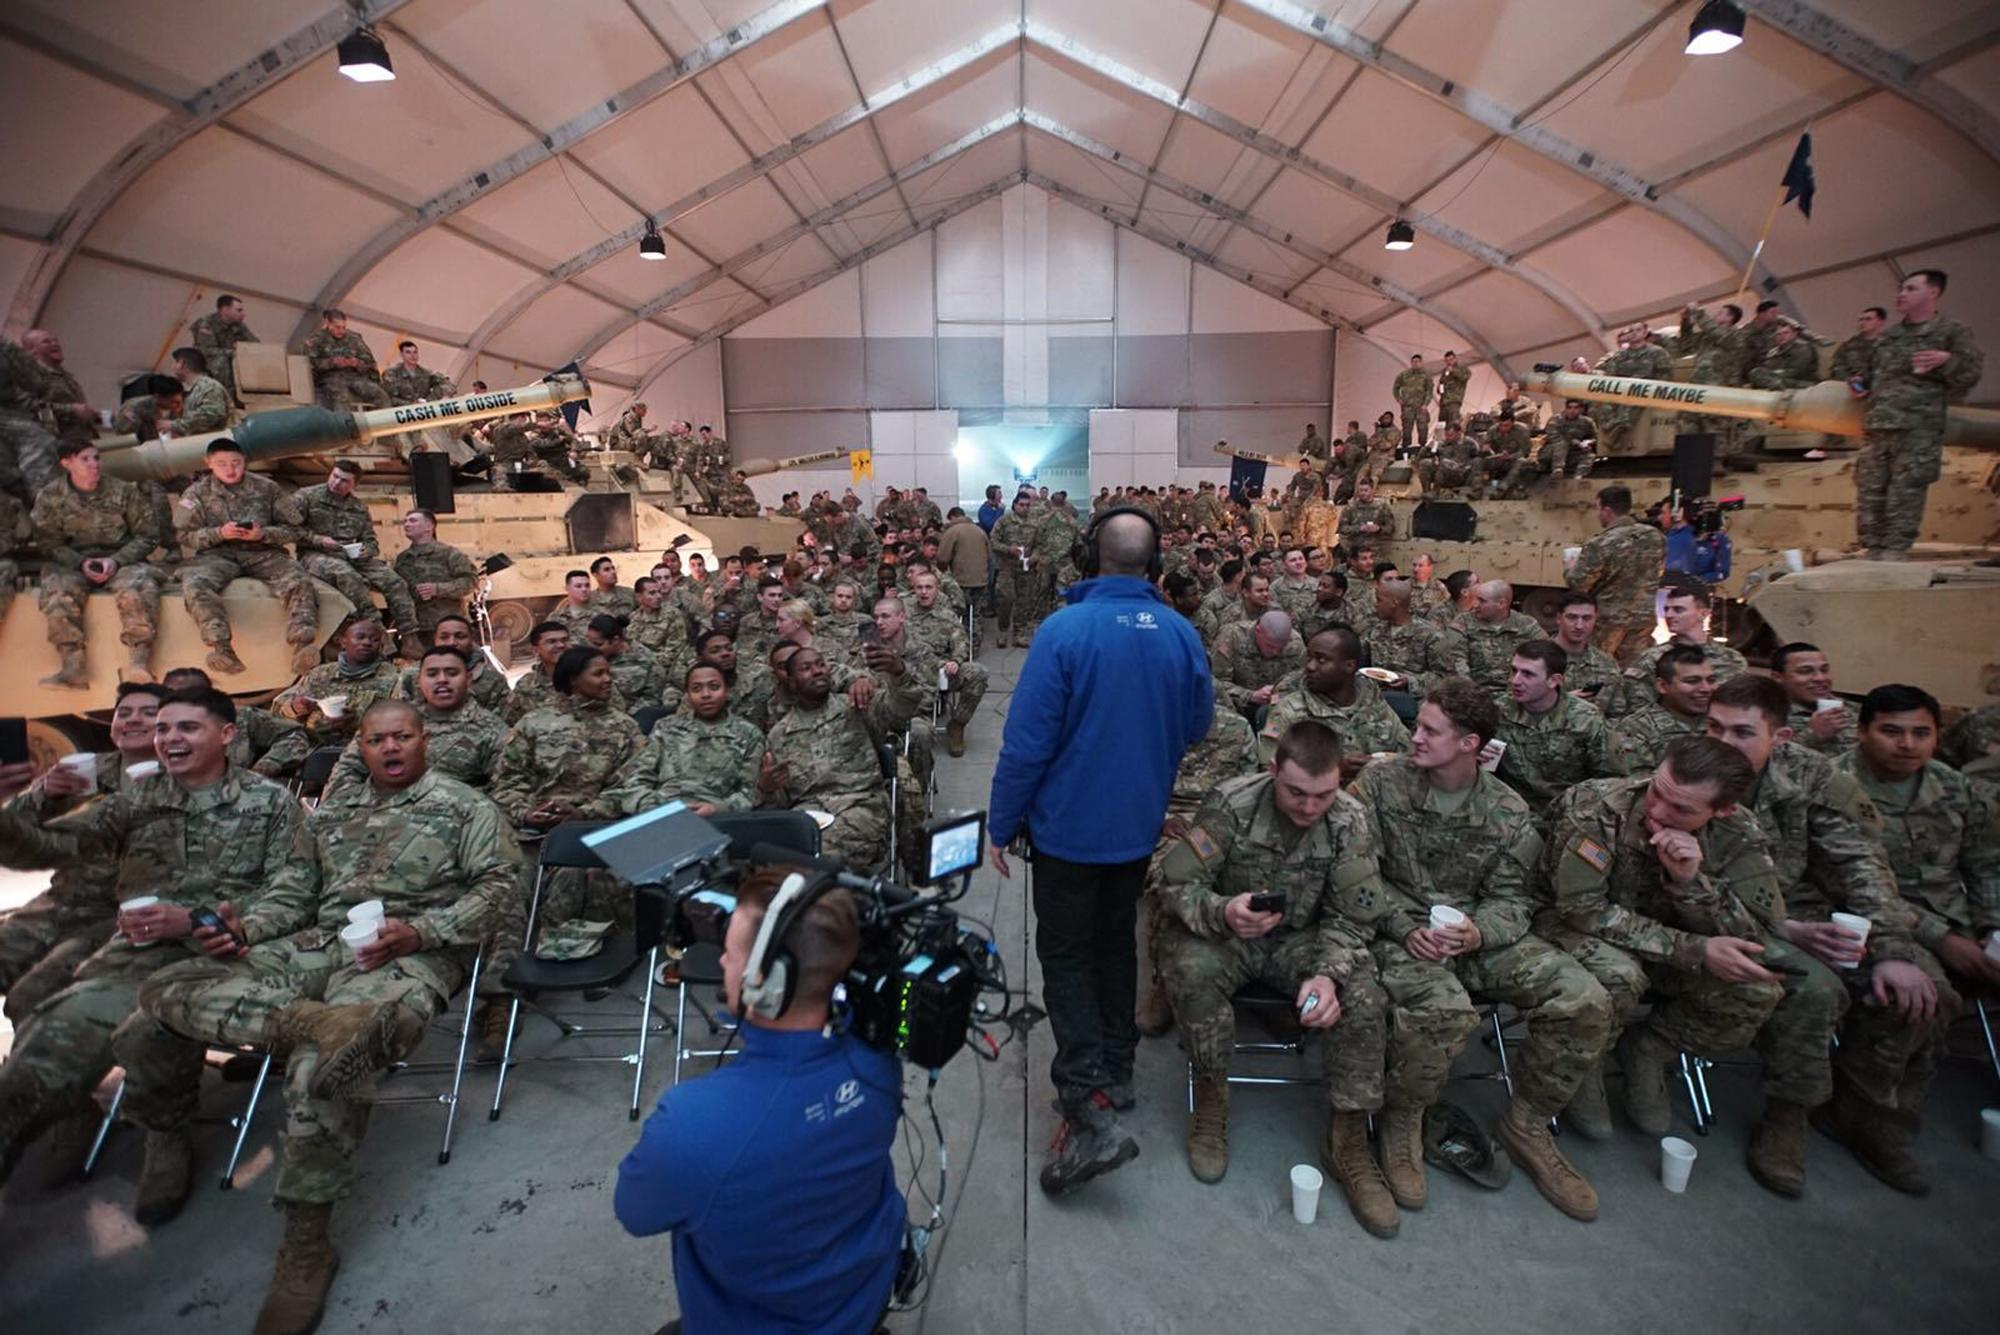 This image made from a video provided by Hyundai Motor America shows U.S. troops on U.S. military base in Zagan, Poland, watching Super Bowl 51 football game between the Atlanta Falcons and the New England Patriots in Houston during a party hosted by Hyundai. Hyundai aired an ad right after the Super Bowl that was recorded while the game was underway in Houston, Sunday, Feb. 5, 2017. The 90-second spot shows U.S. troops at the military base in Poland watching the game. A few service members are called into a room, where they are connected virtually to their family members — who are at the game. (Hyundai Motor America via AP)